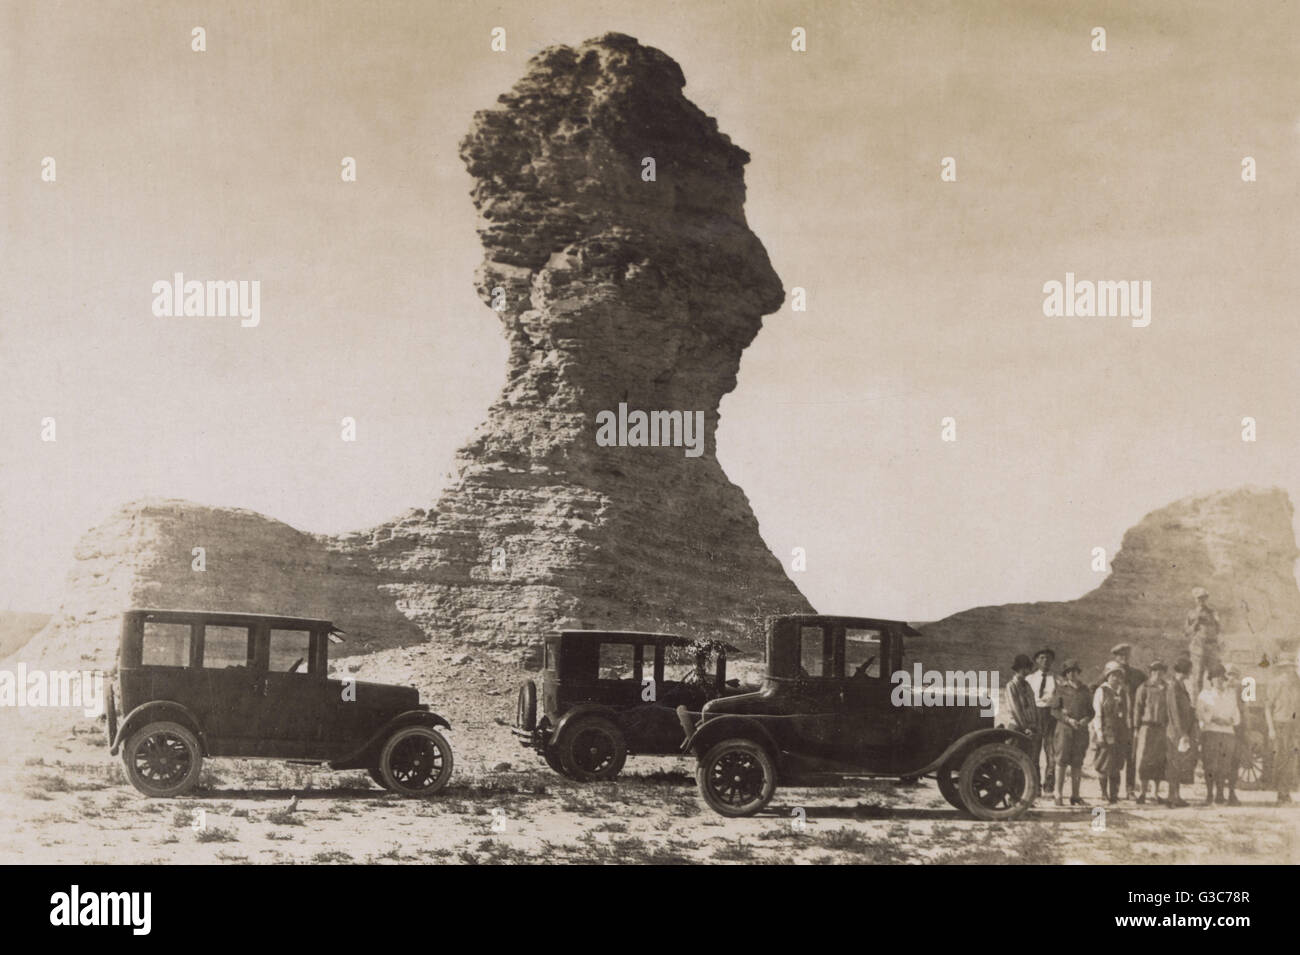 Kansas gove county grinnell - Monument Rocks At Smoky Hill Gove County Kansas Usa Showing One Named